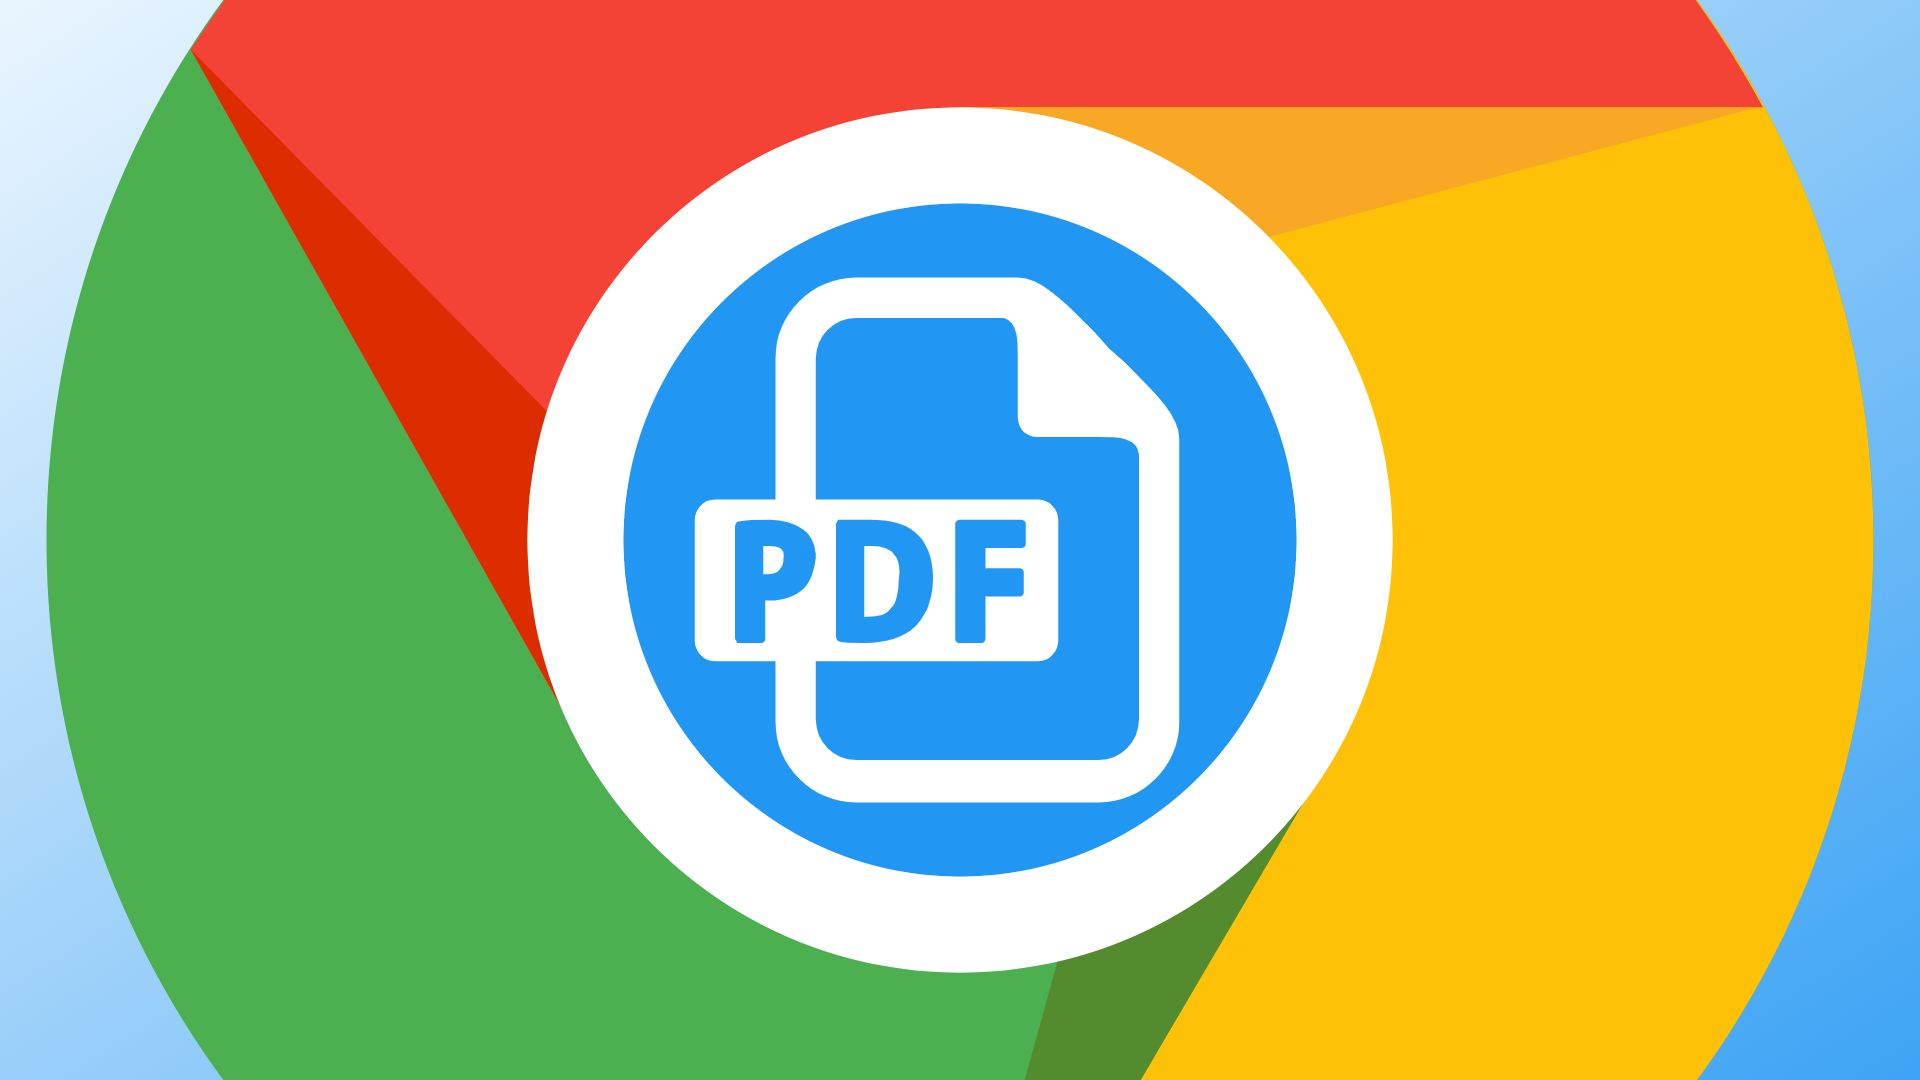 Chrome is getting a presentation mode for the built-in PDF viewer